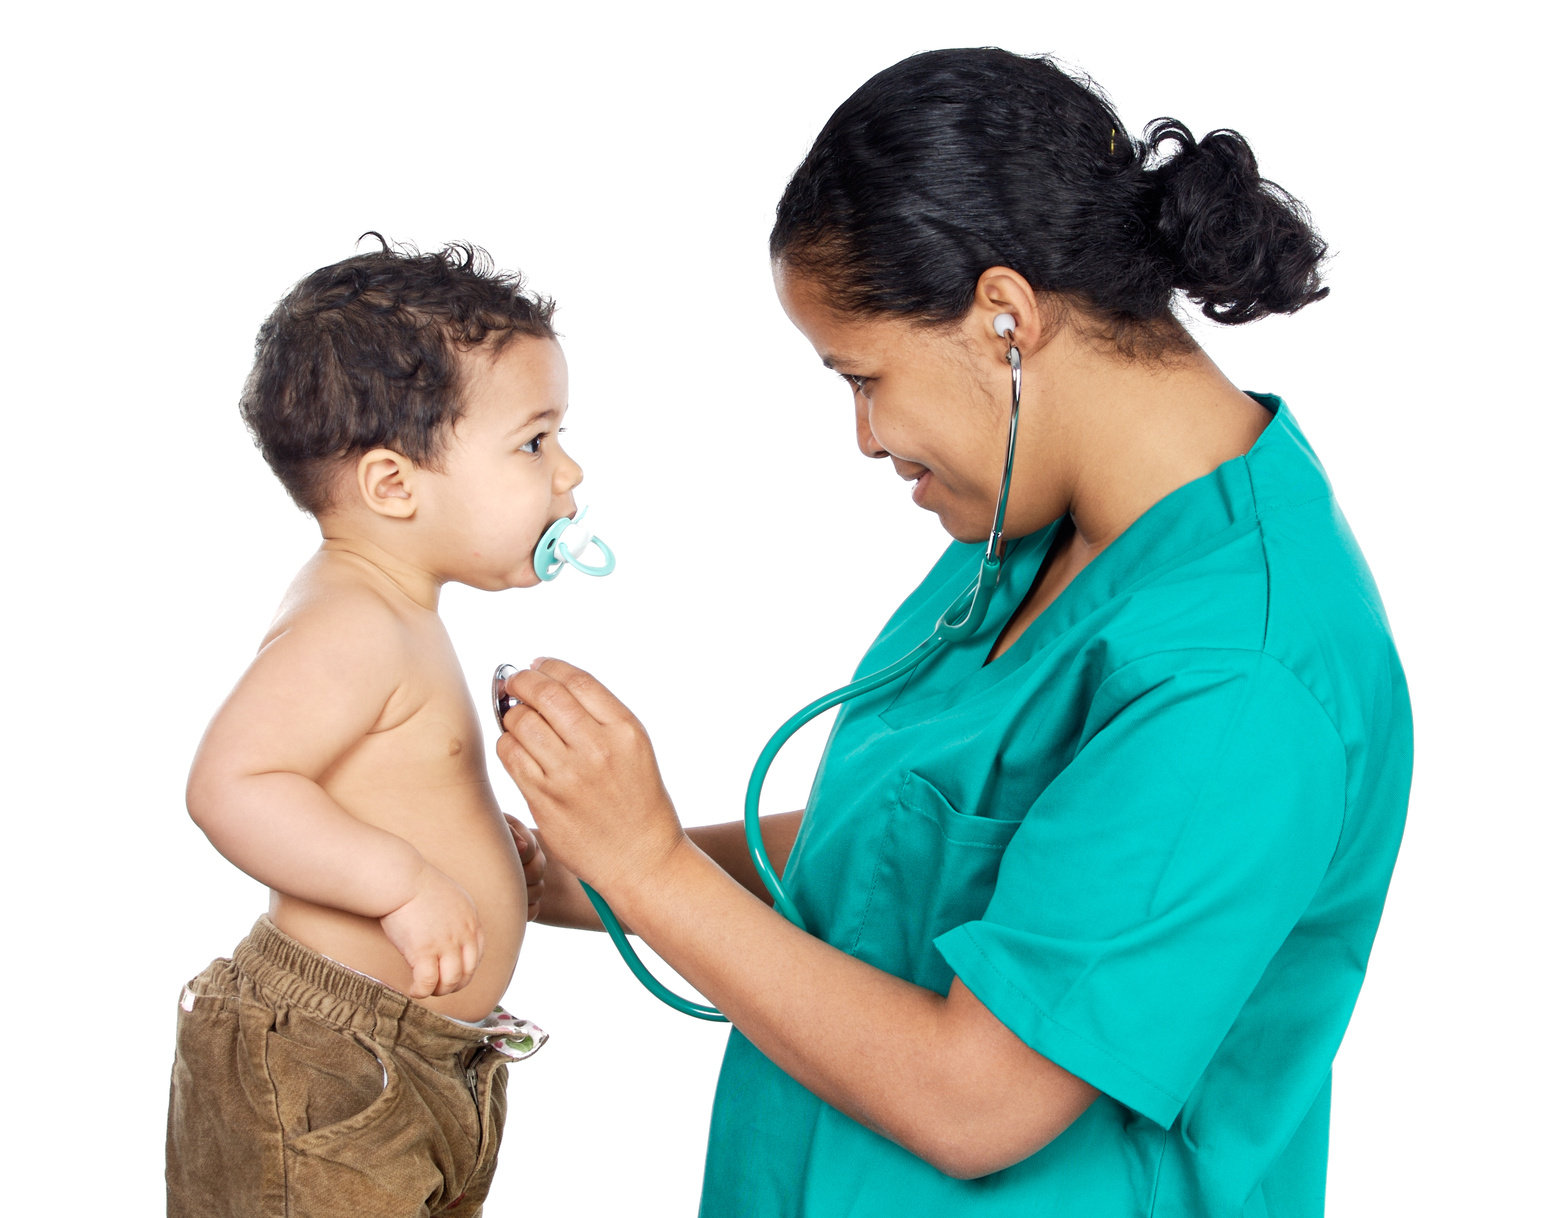 Paediatric First Aid Course for Nannies